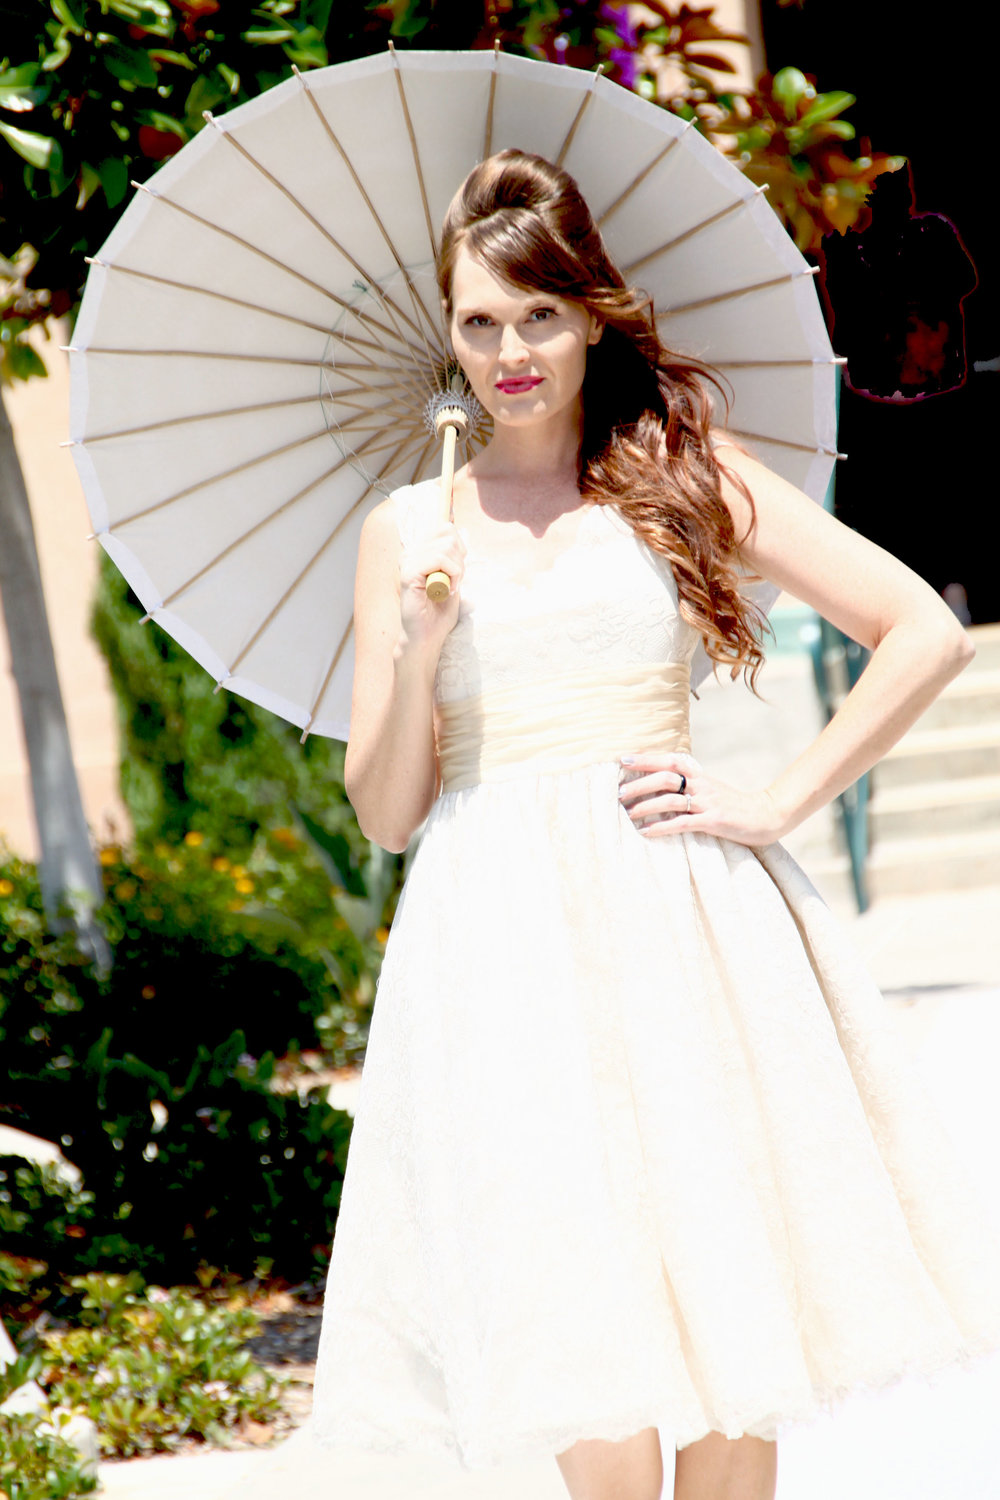 model with parasol.jpg